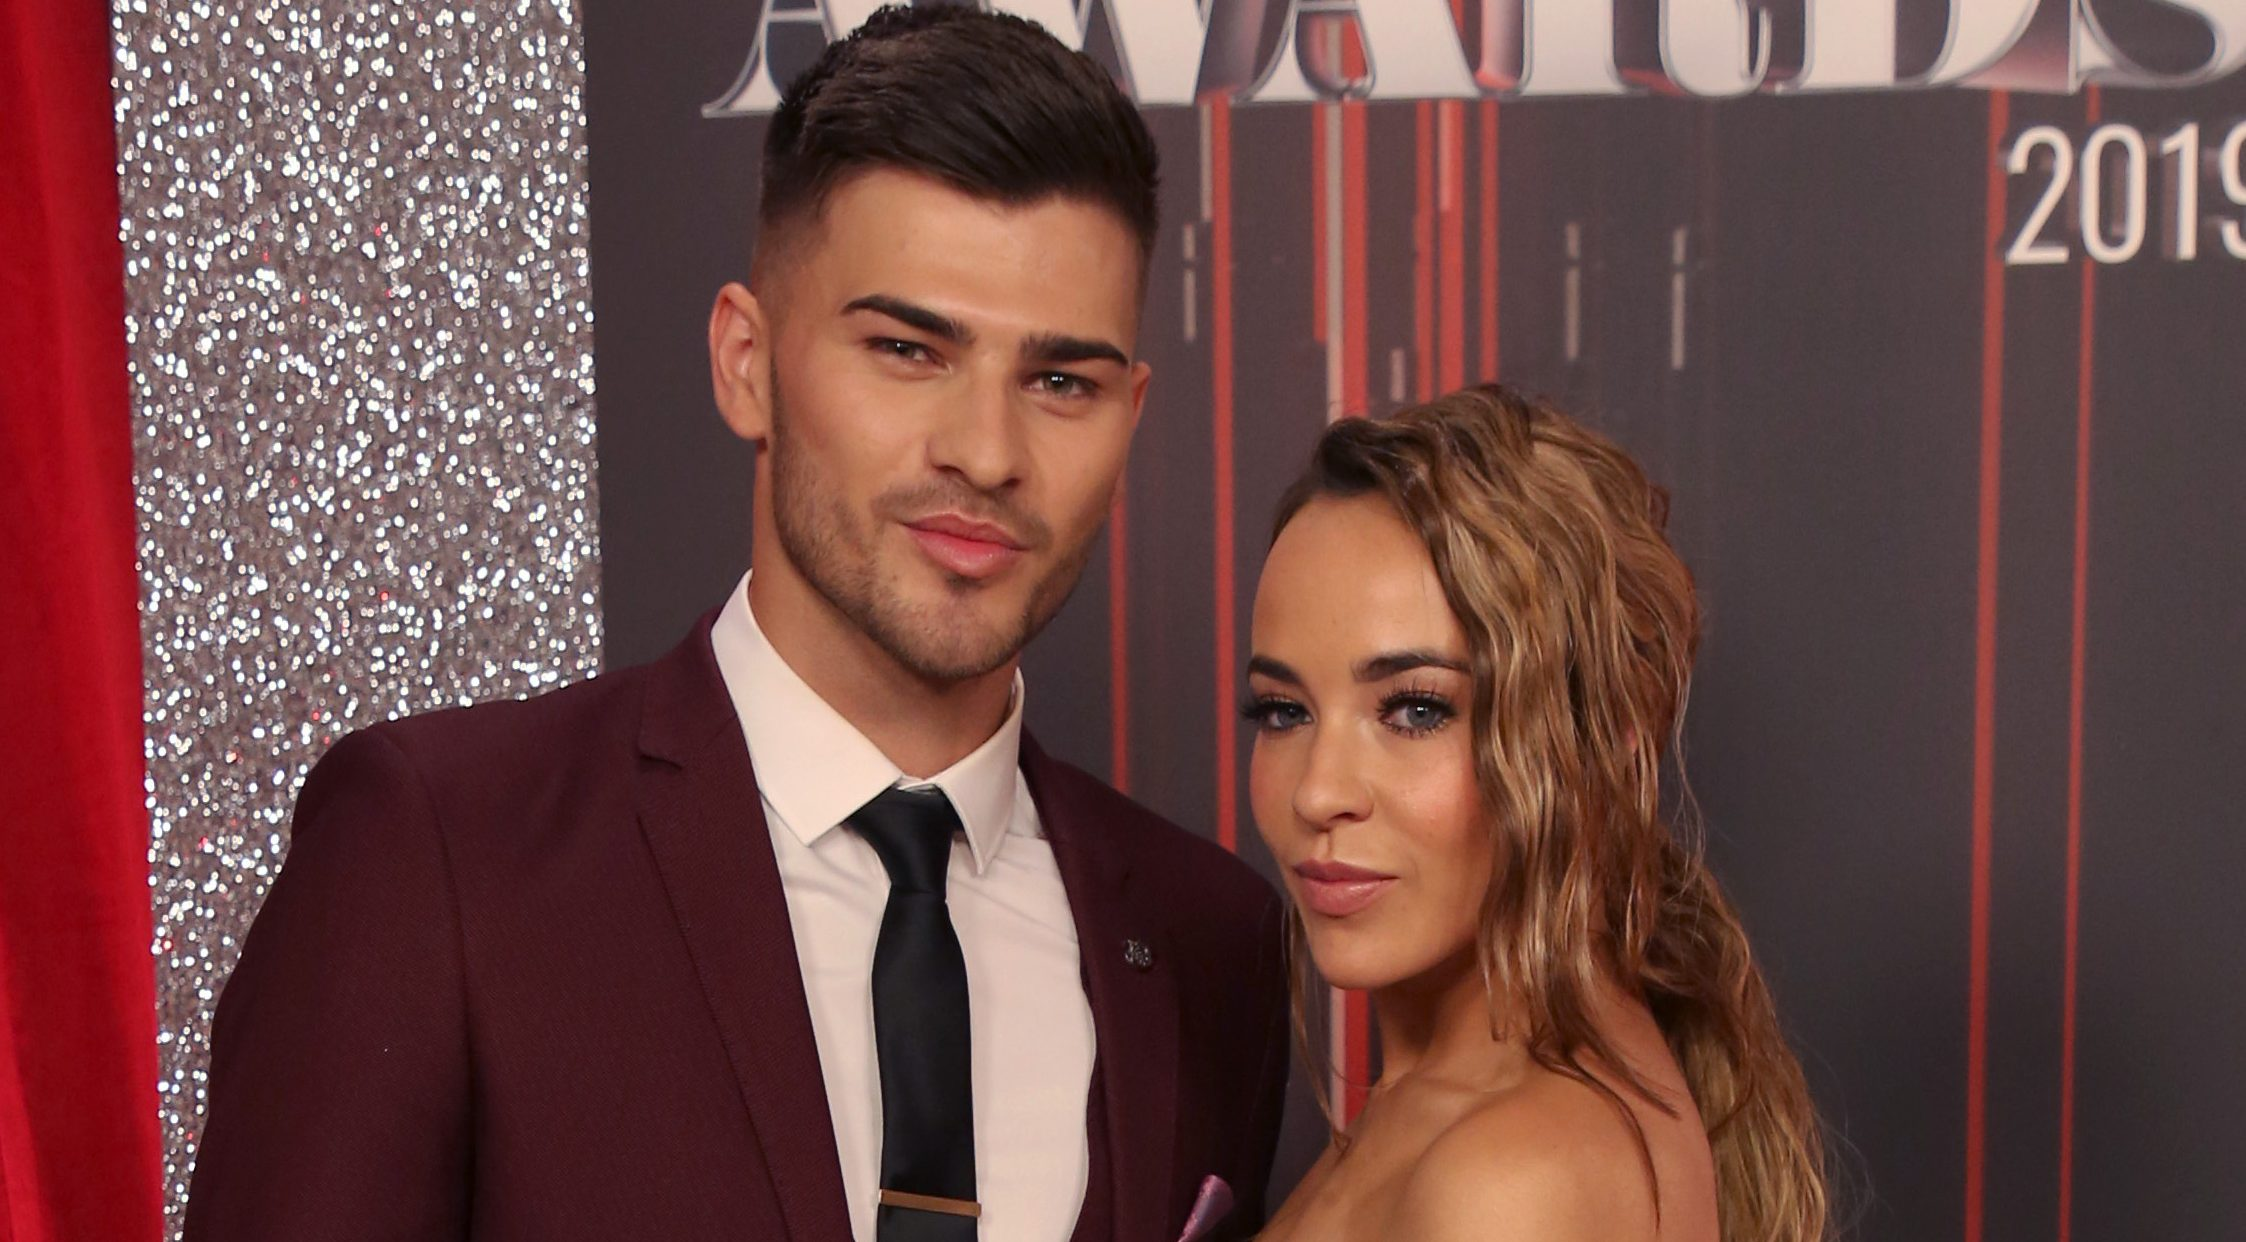 Hollyoaks star Stephanie Davis denies her romance with co-star Owen Warner is 'on the rocks'